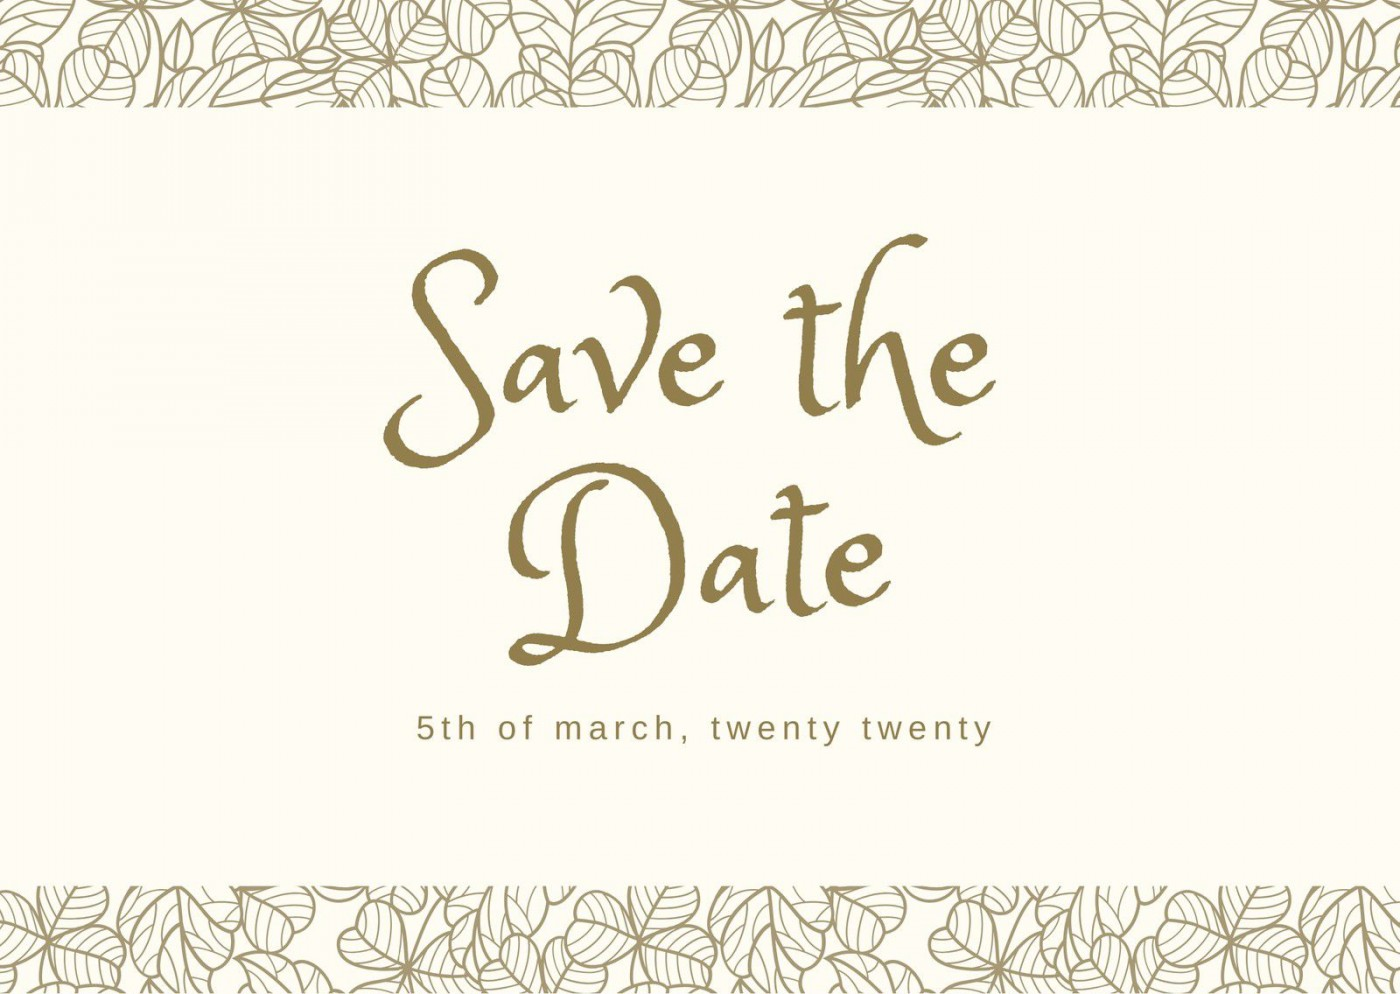 002 Striking Save The Date Postcard Template High Definition  Diy Free Birthday1400